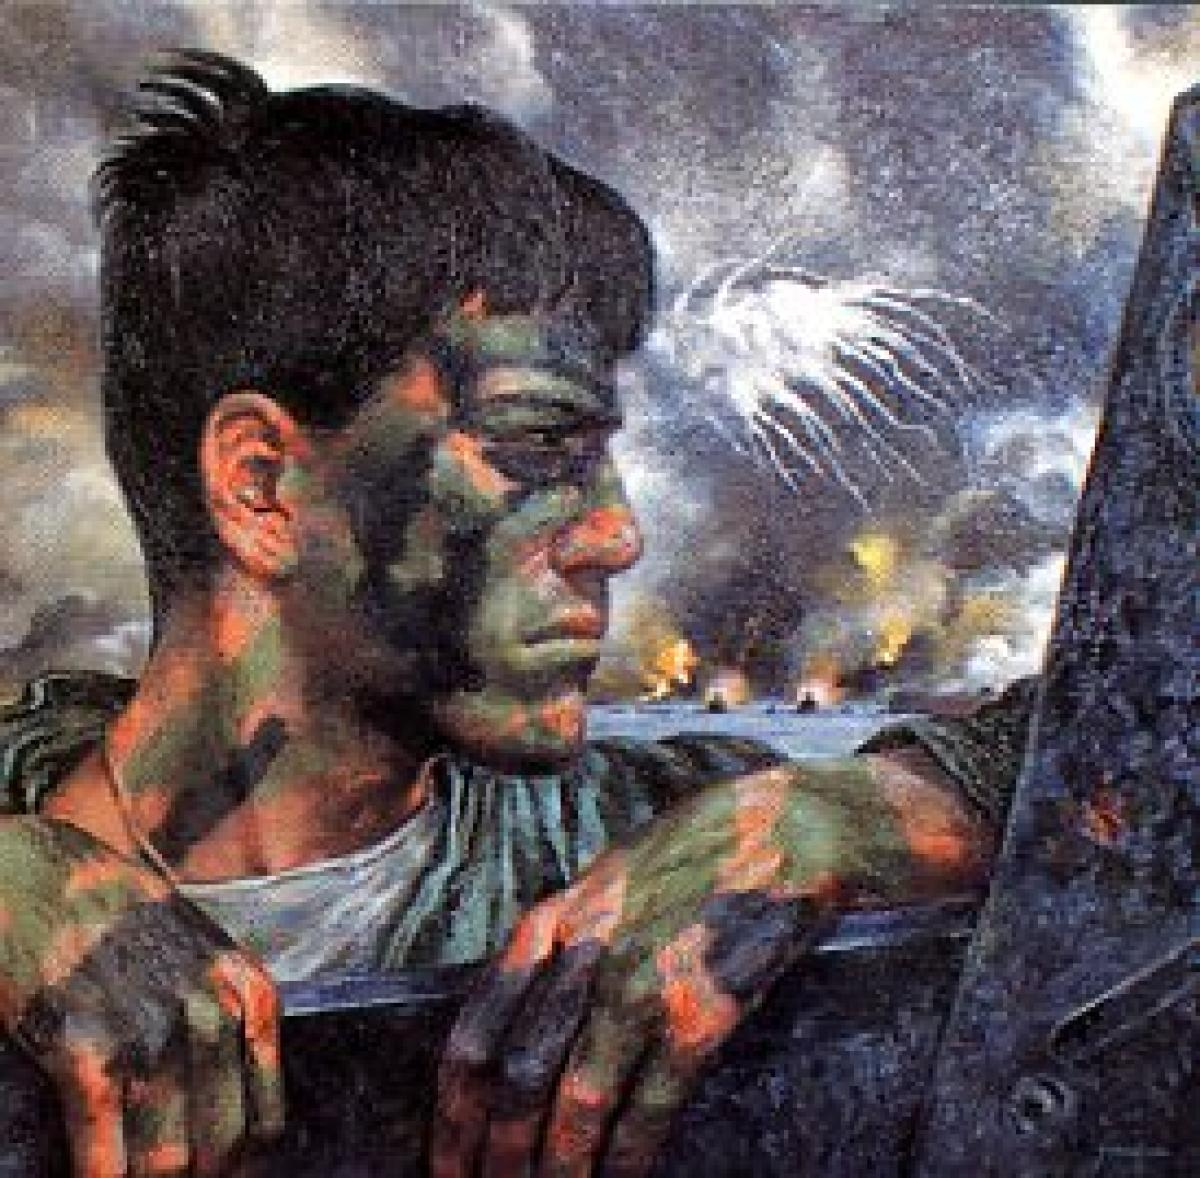 ARTWORK BY TOM LEA, COURTESY OF THE U.S. ARMY CENTER FOR MILITARY HISTORY